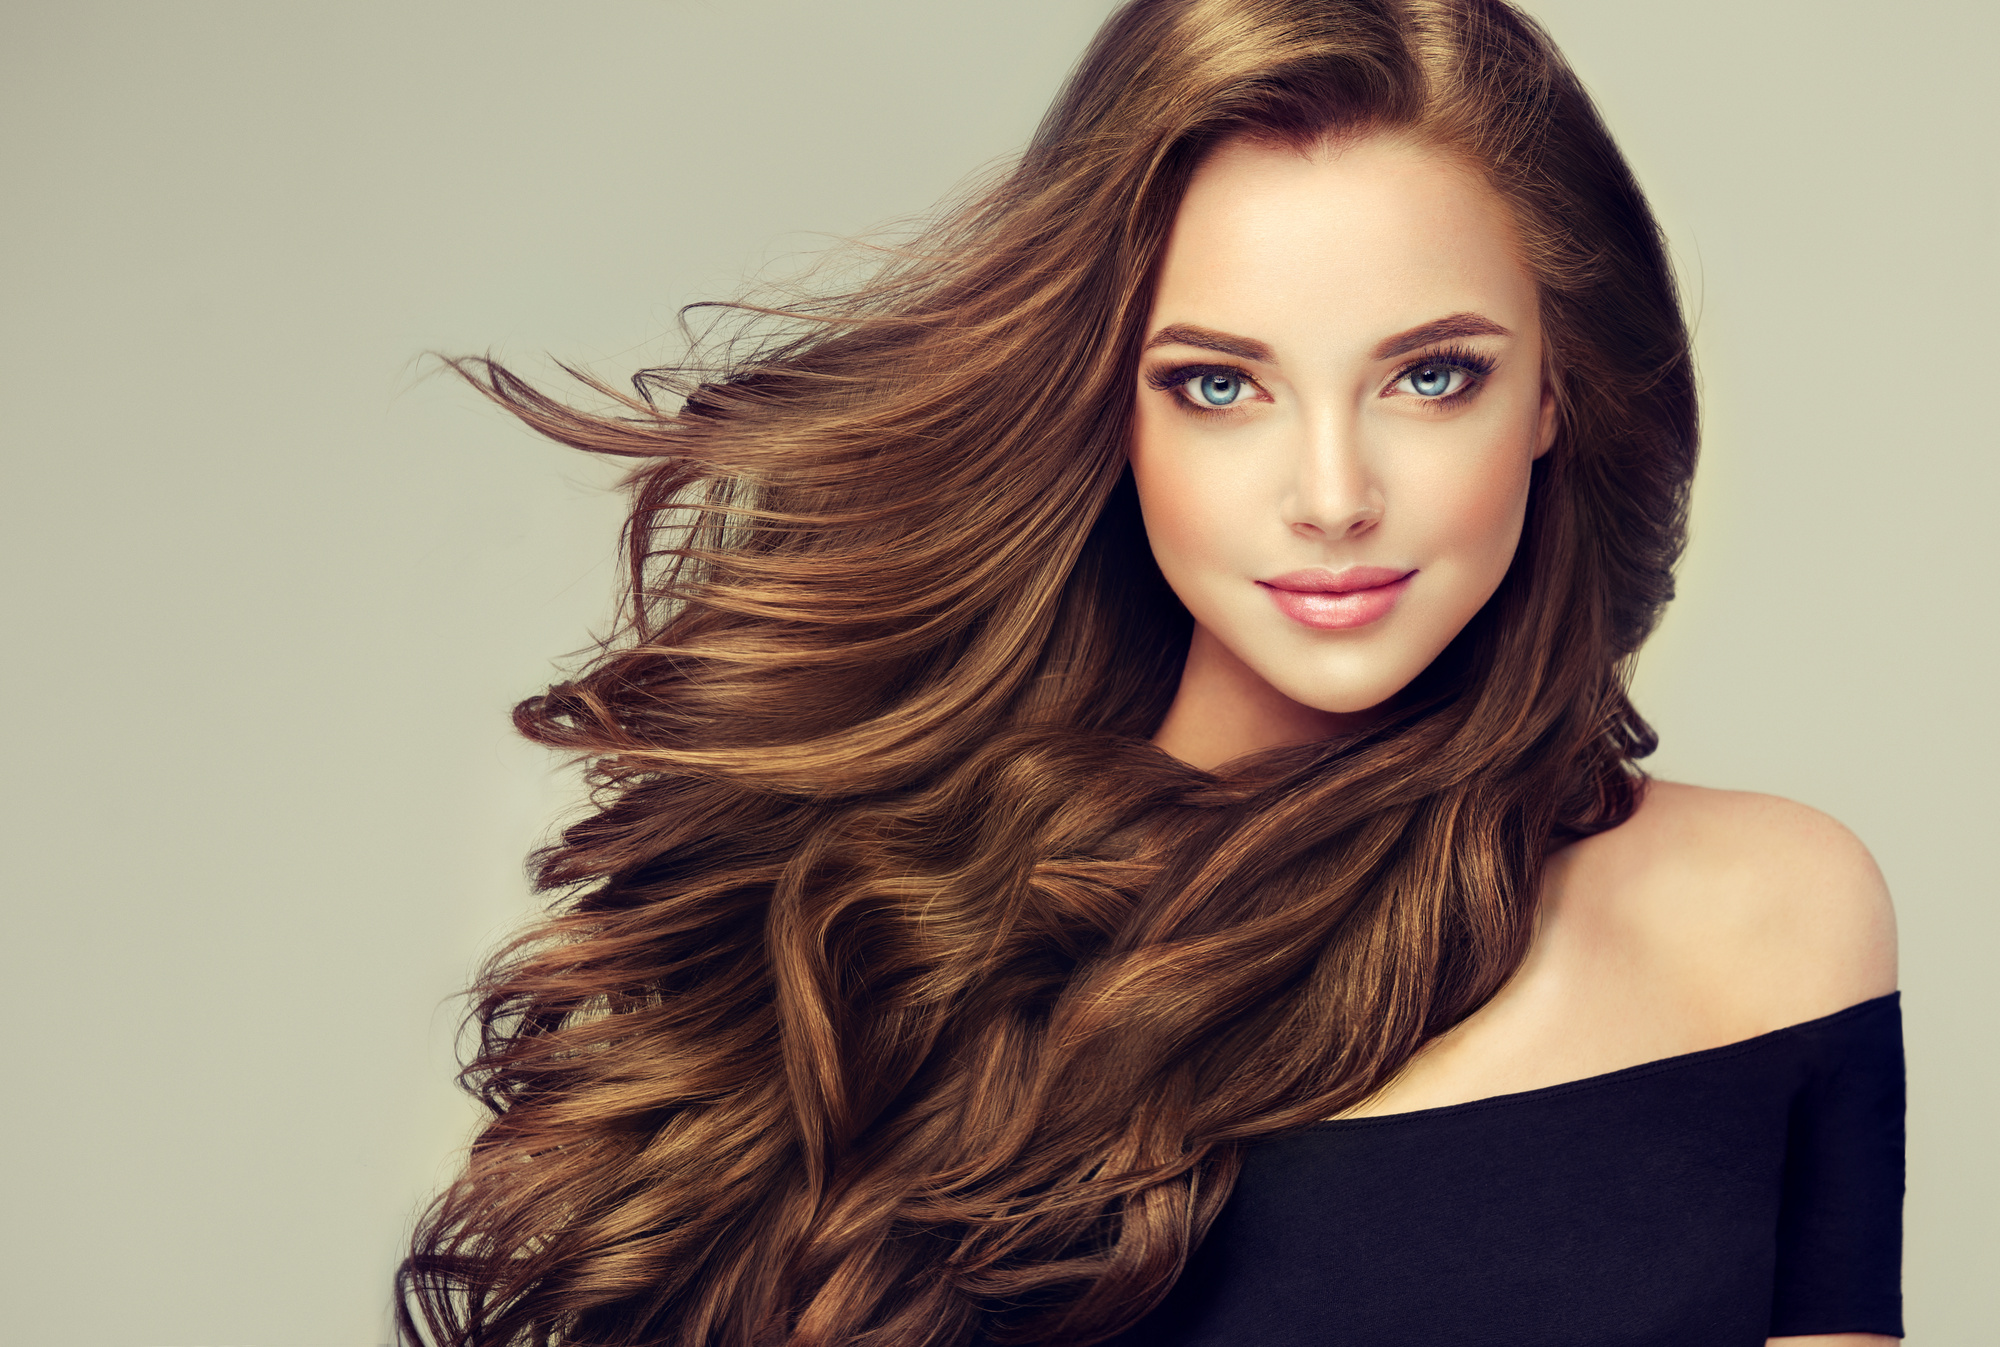 Make Everyday a Great Hair Day: The Perks of a Routine Salon Blowout